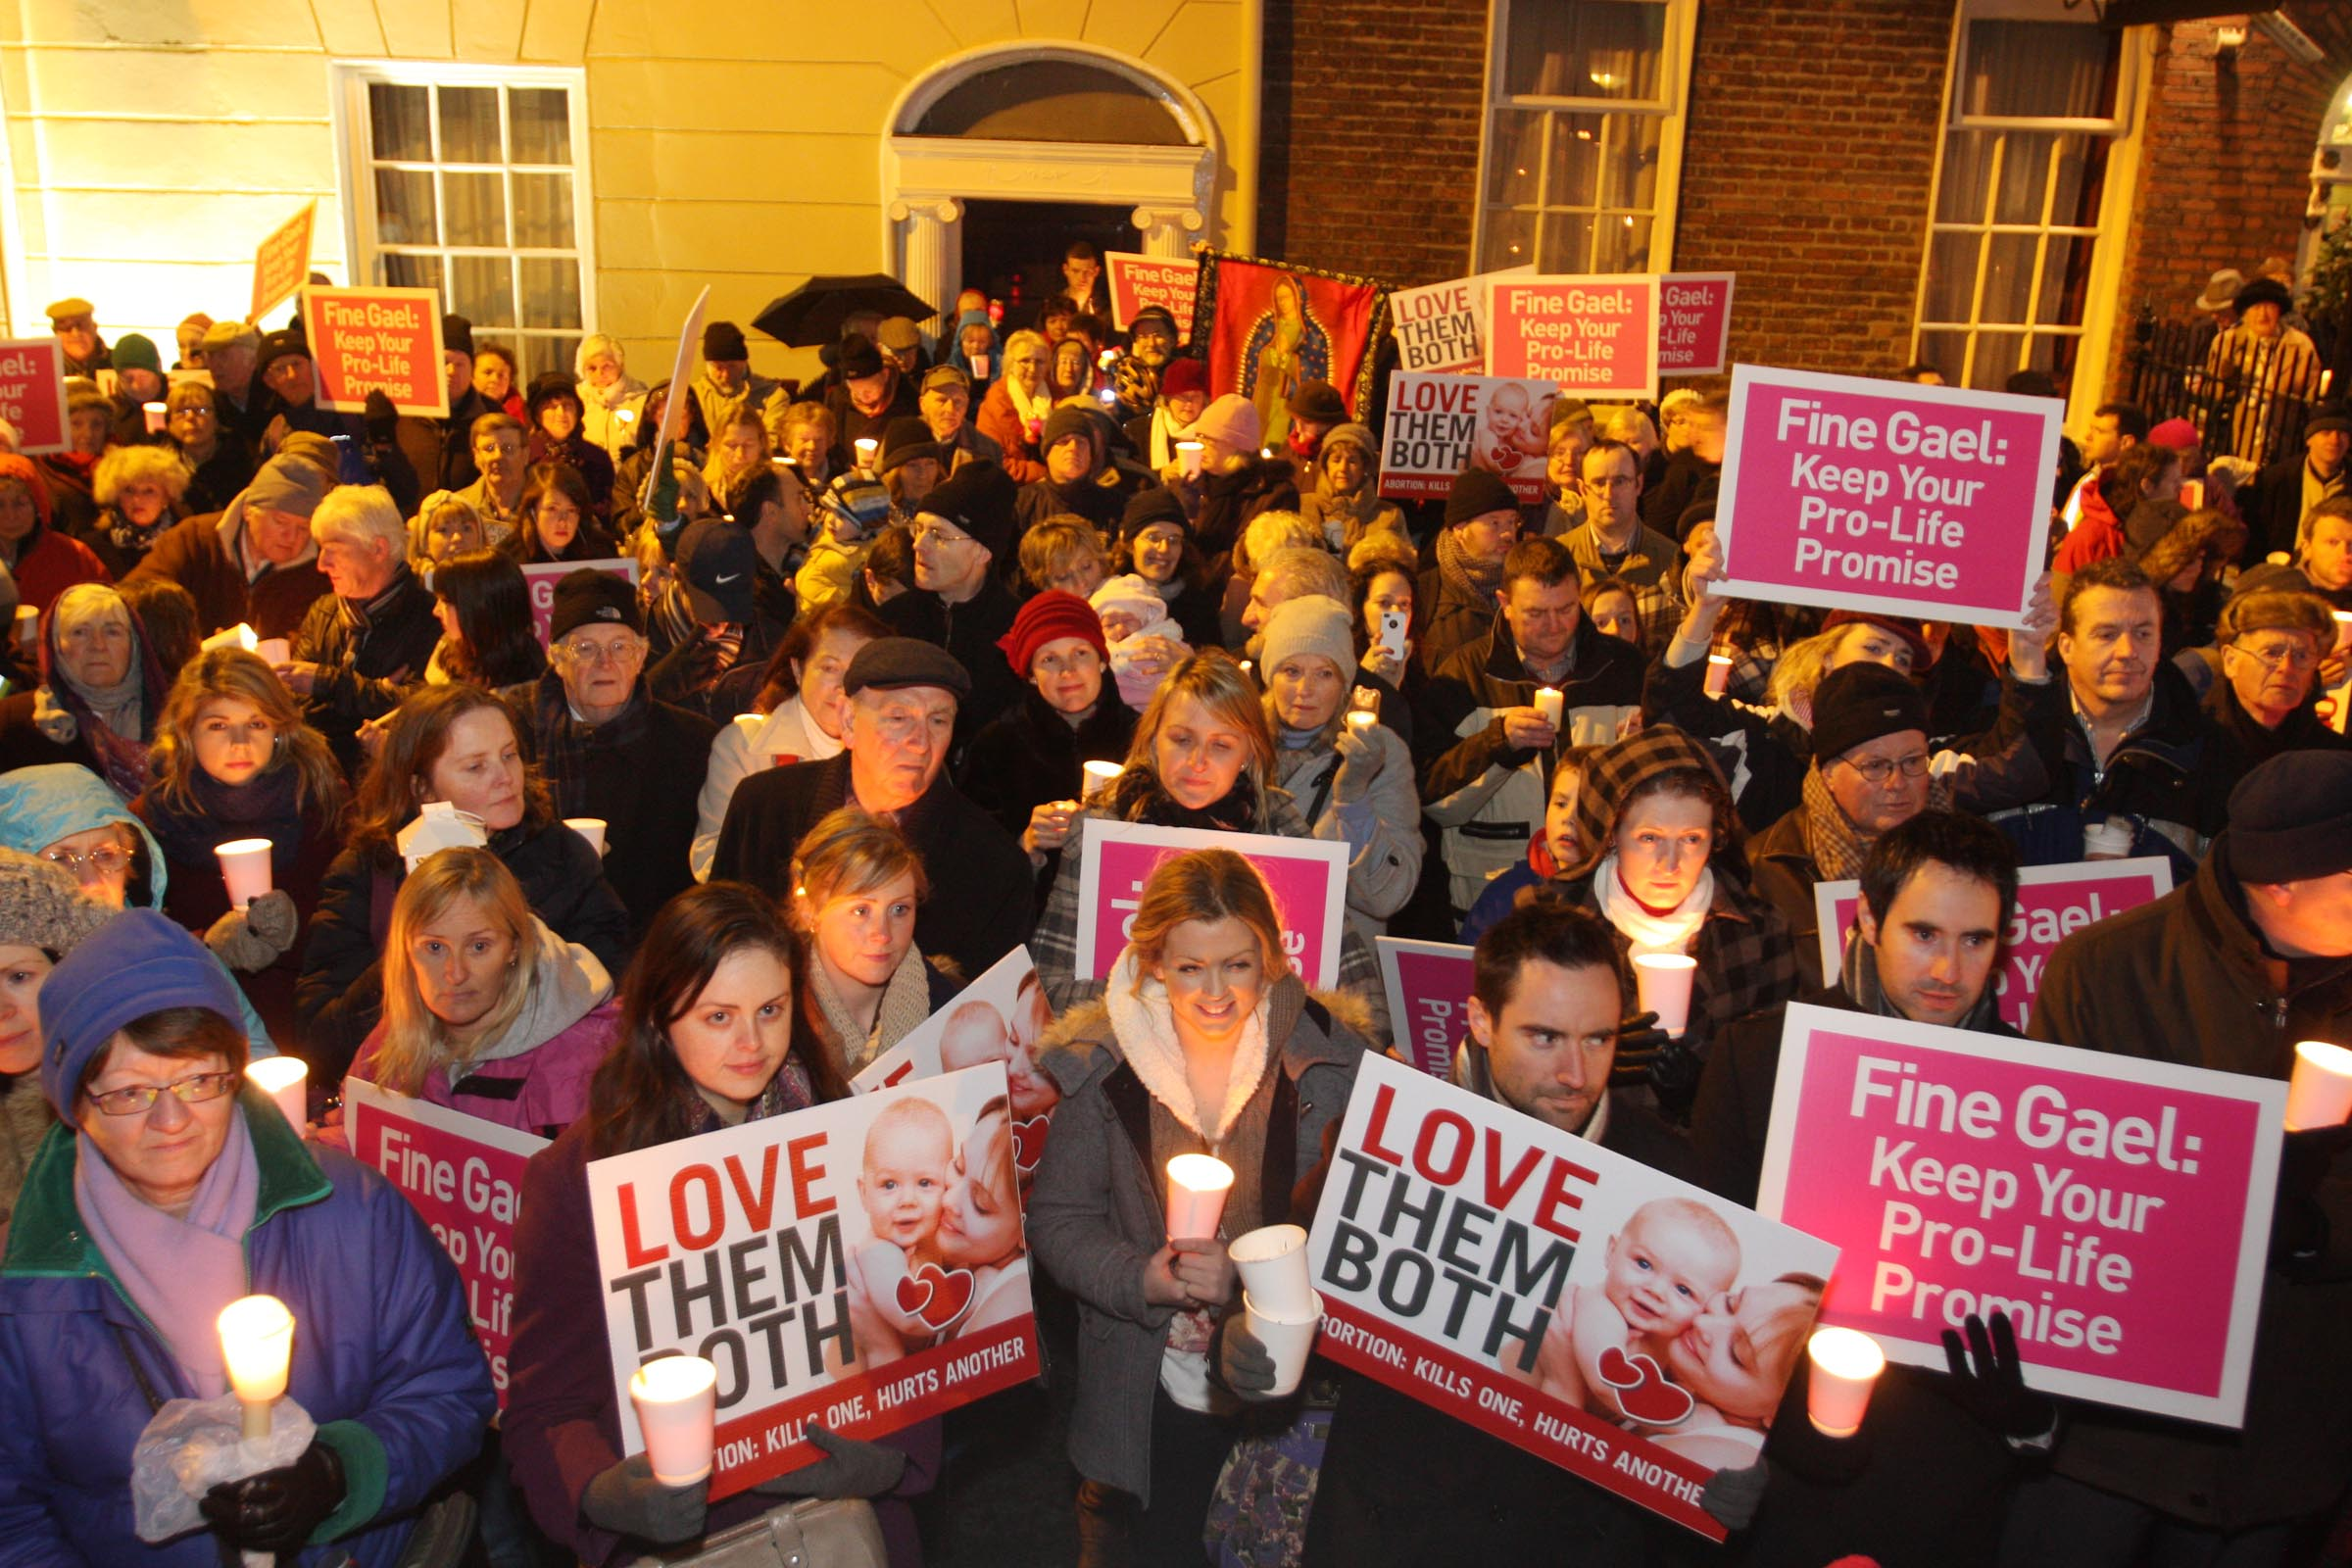 07.12.2012: Unite For Life pro-life vigil attracts thousands